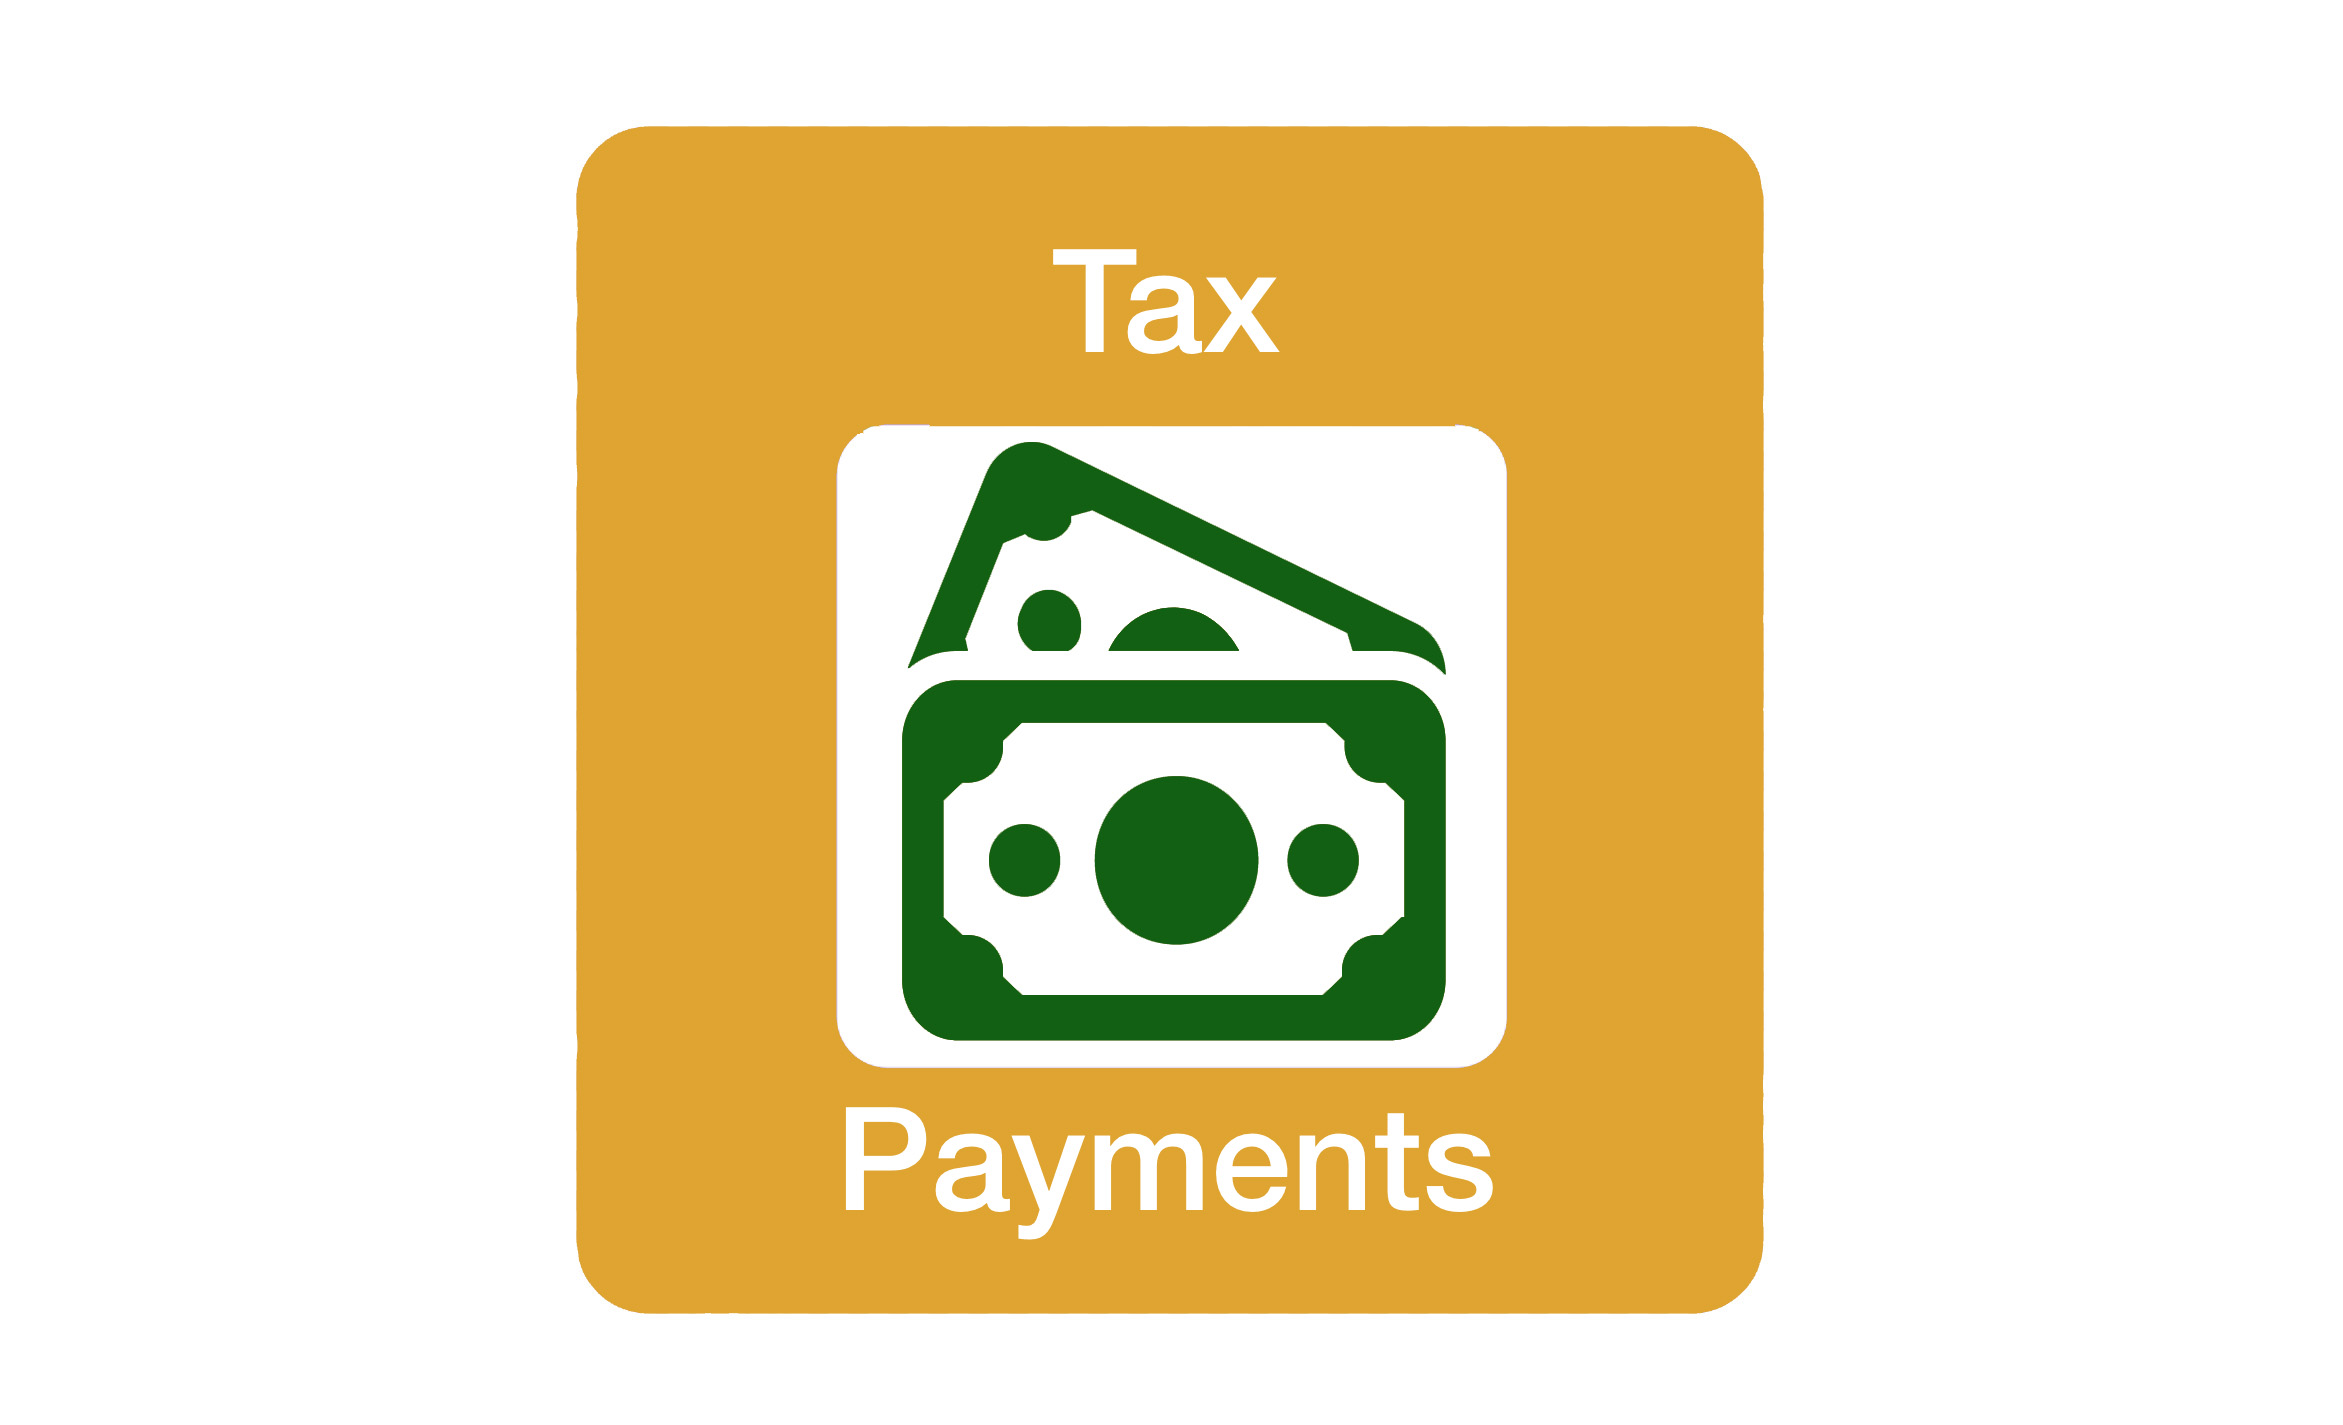 Submit Tax Payments